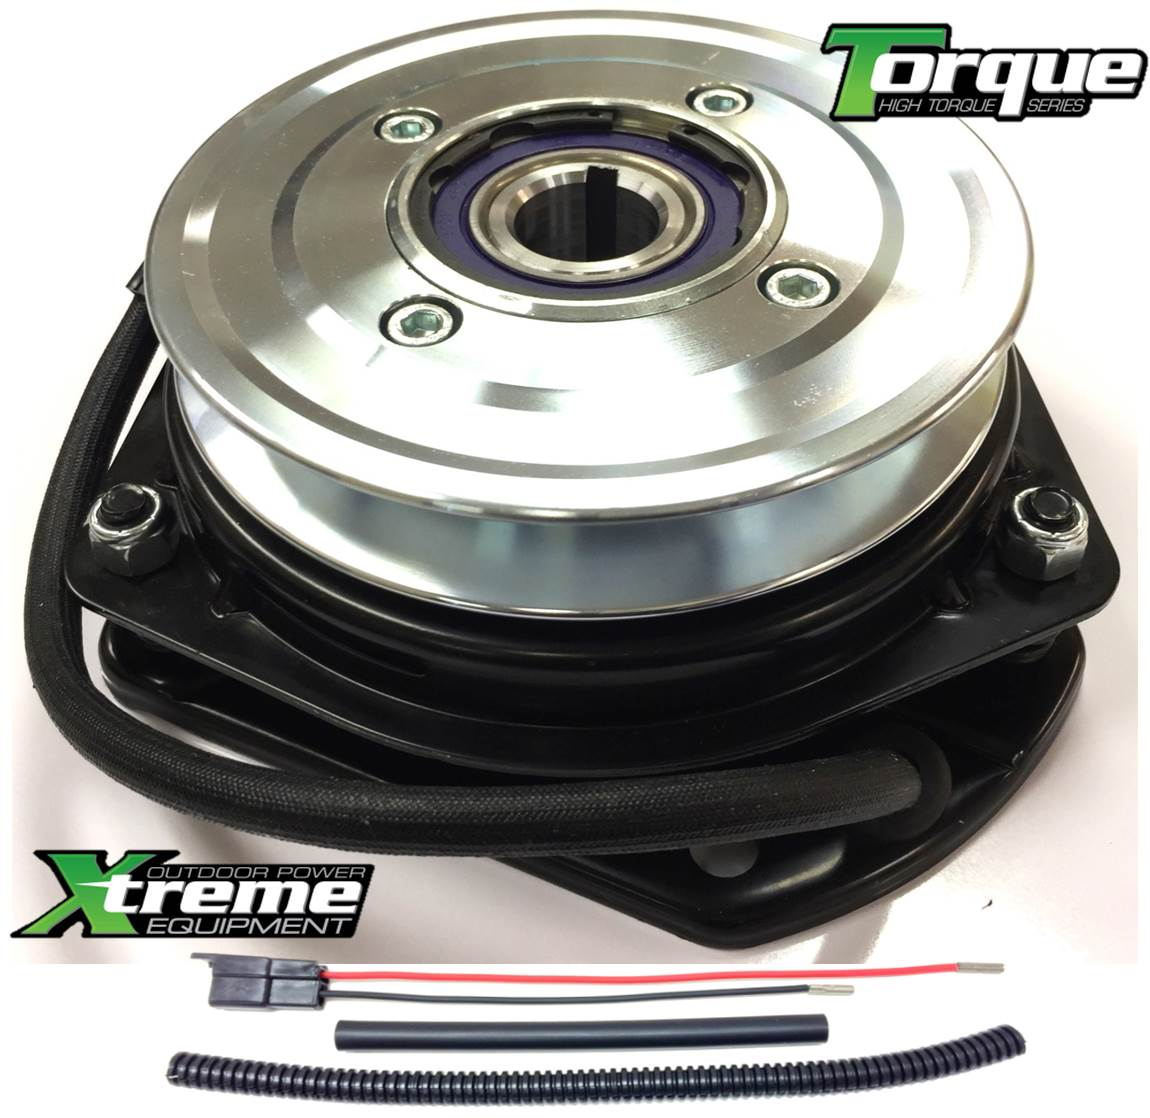 bundle 2 items pto electric blade clutch, wire harness repair kit Car Wiring Harness bundle 2 items pto electric blade clutch, wire harness repair kit replaces husqvarna 525749501 pto clutch, oem upgrade! w wire harness repair kit